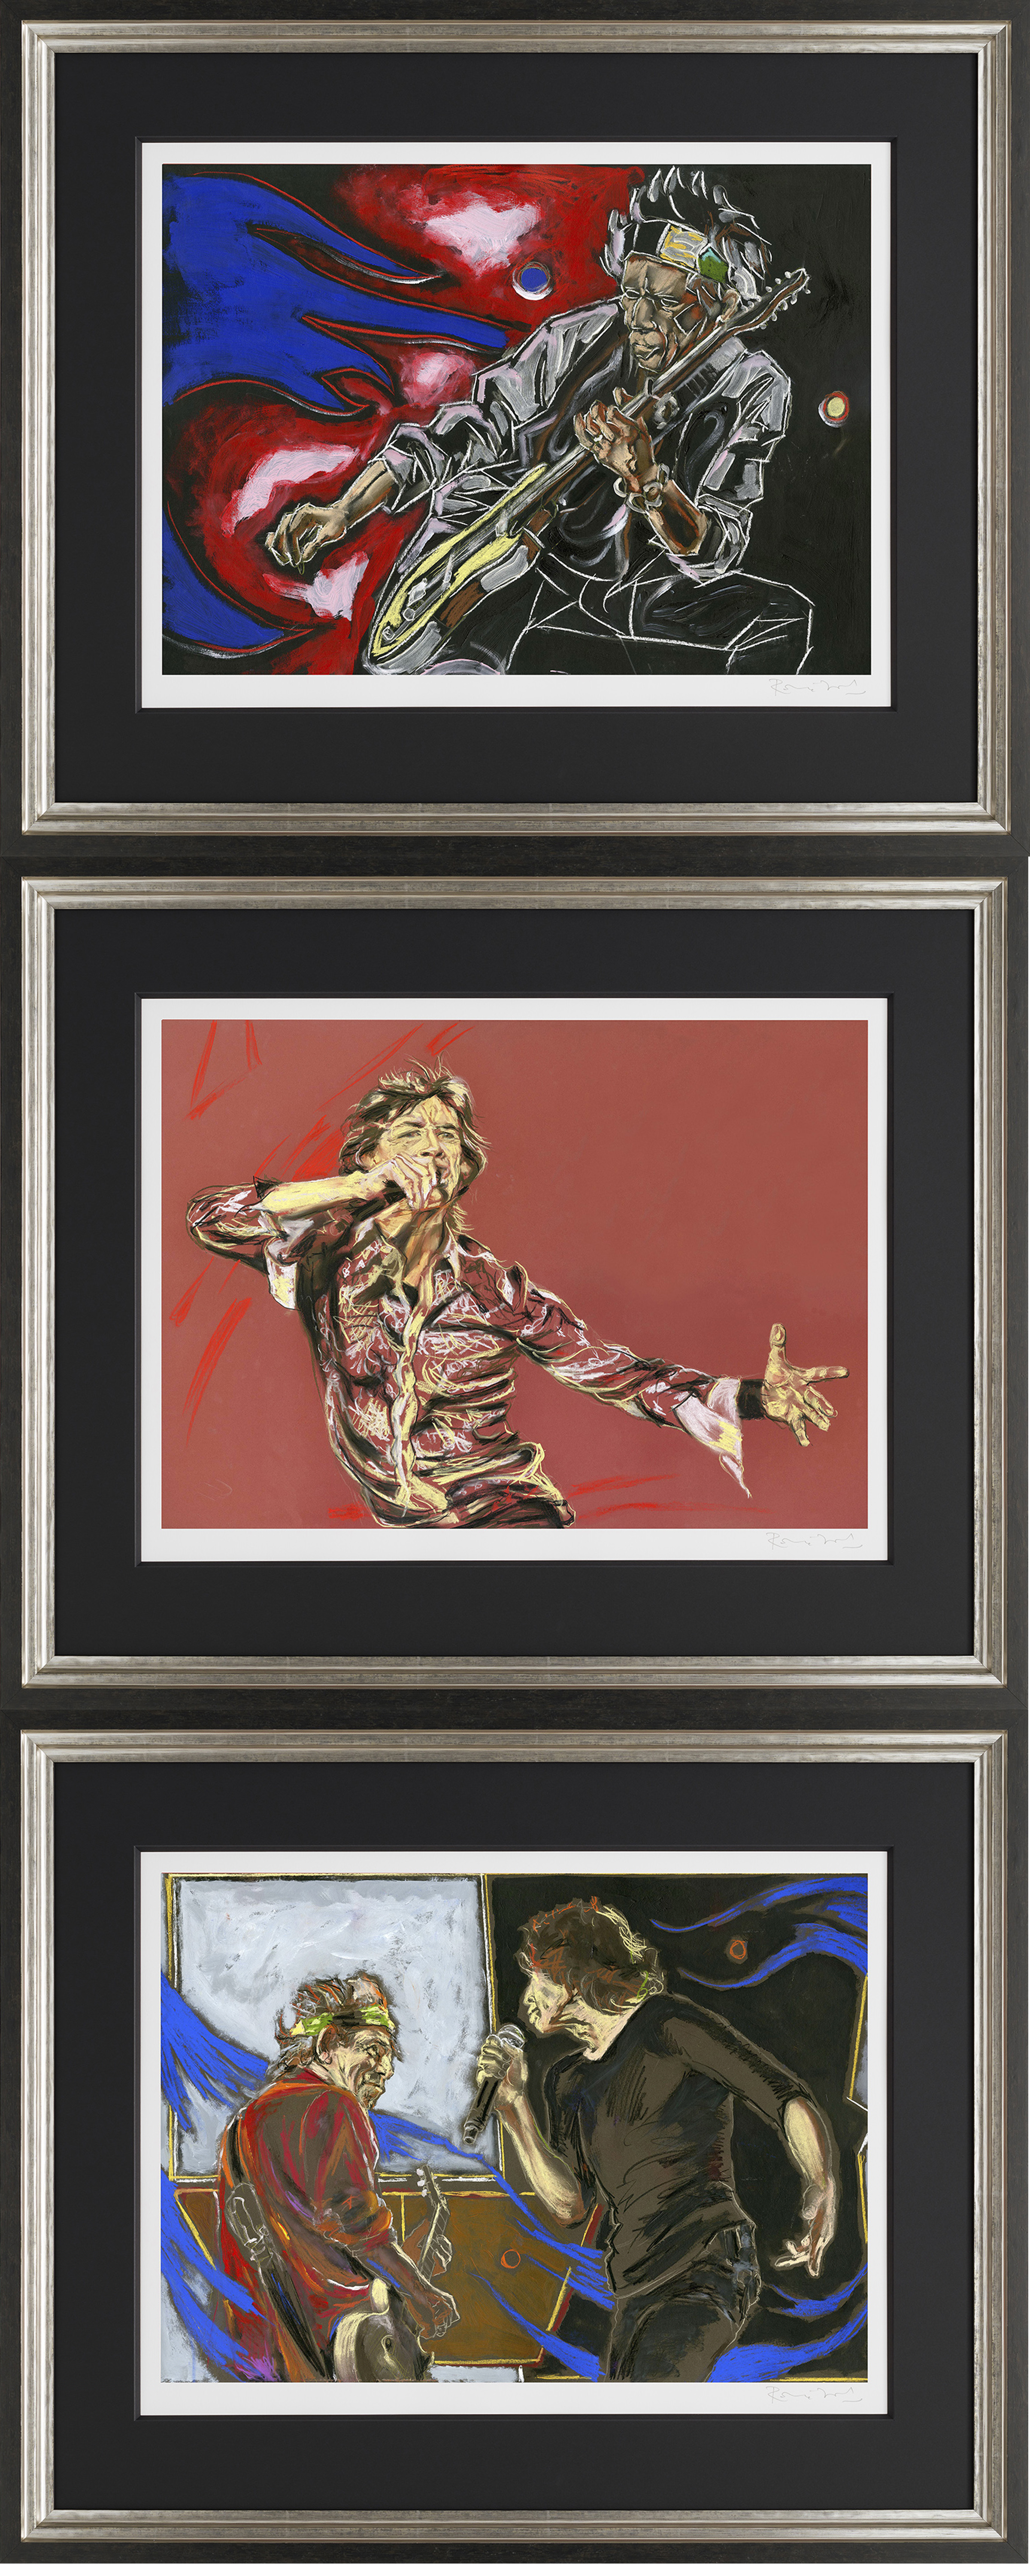 Glimmer suite set of 3 framed by ronnie wood price 385000 glimmer suite set of 3 framed by ronnie wood jeuxipadfo Gallery